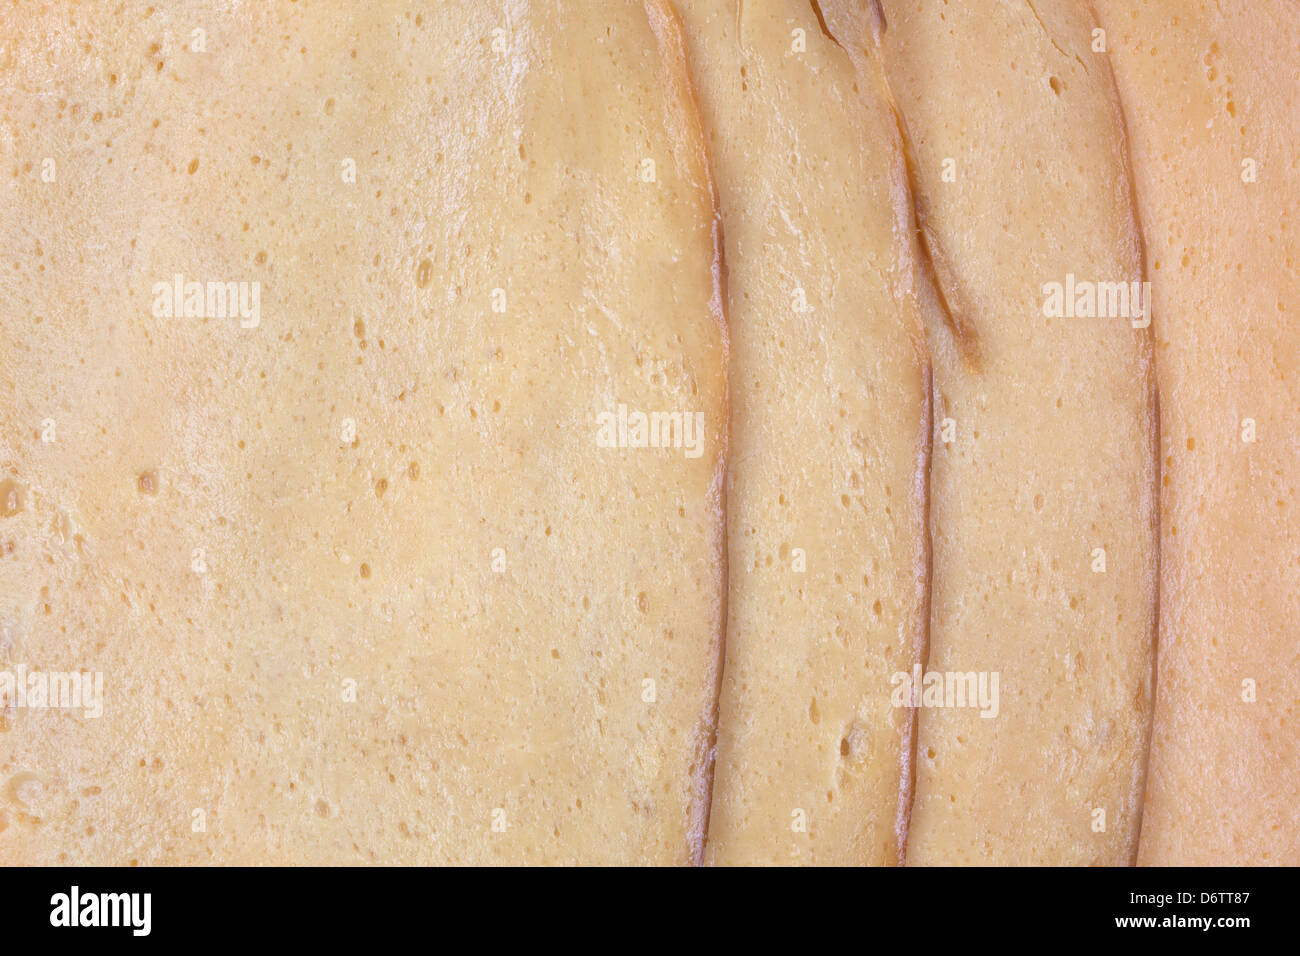 A very close view of sliced tofu meatless turkey. - Stock Image